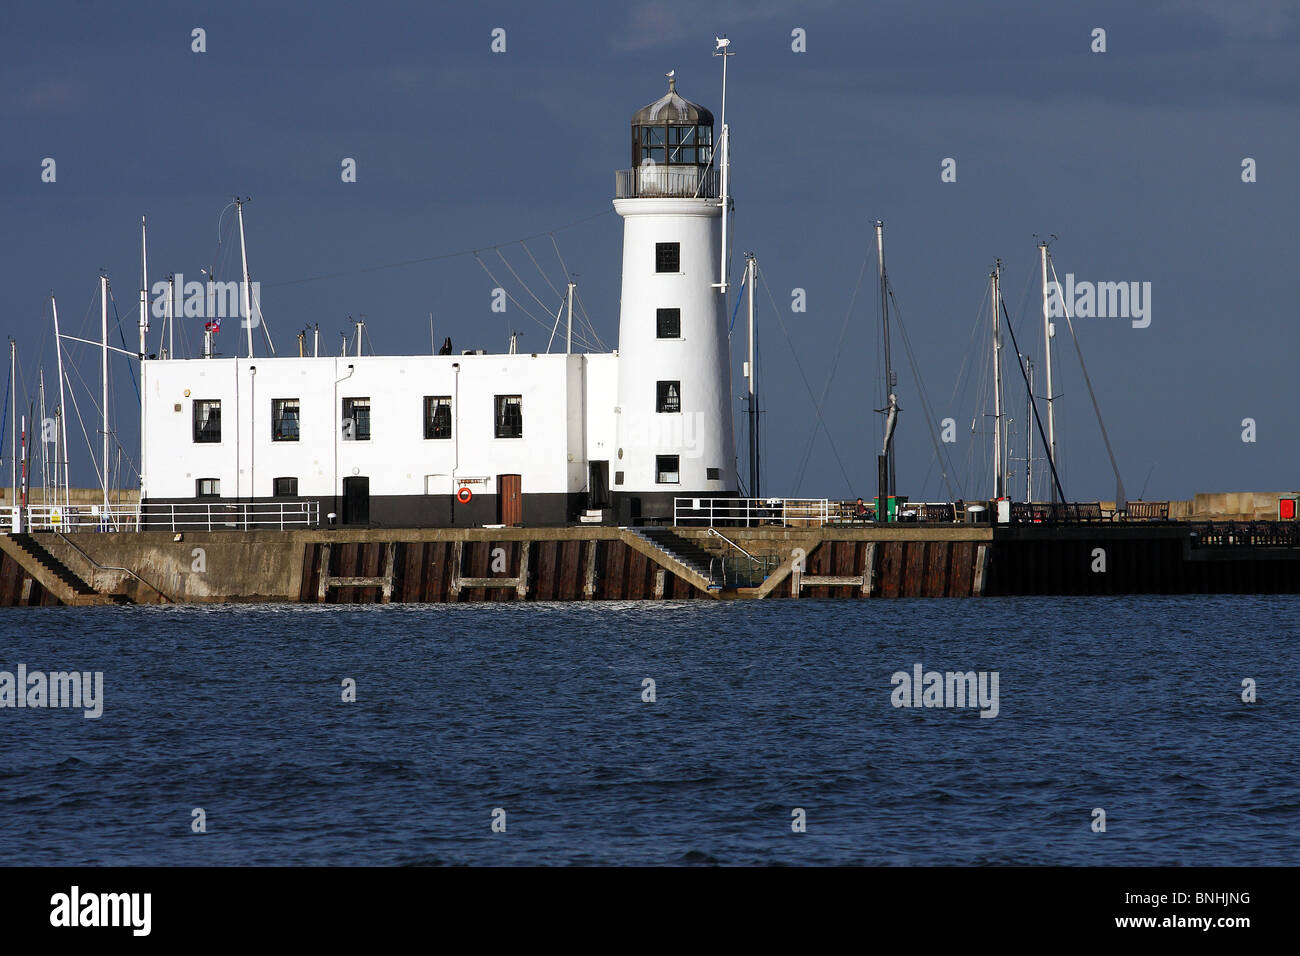 The lighthouse in Scarborough - Stock Image